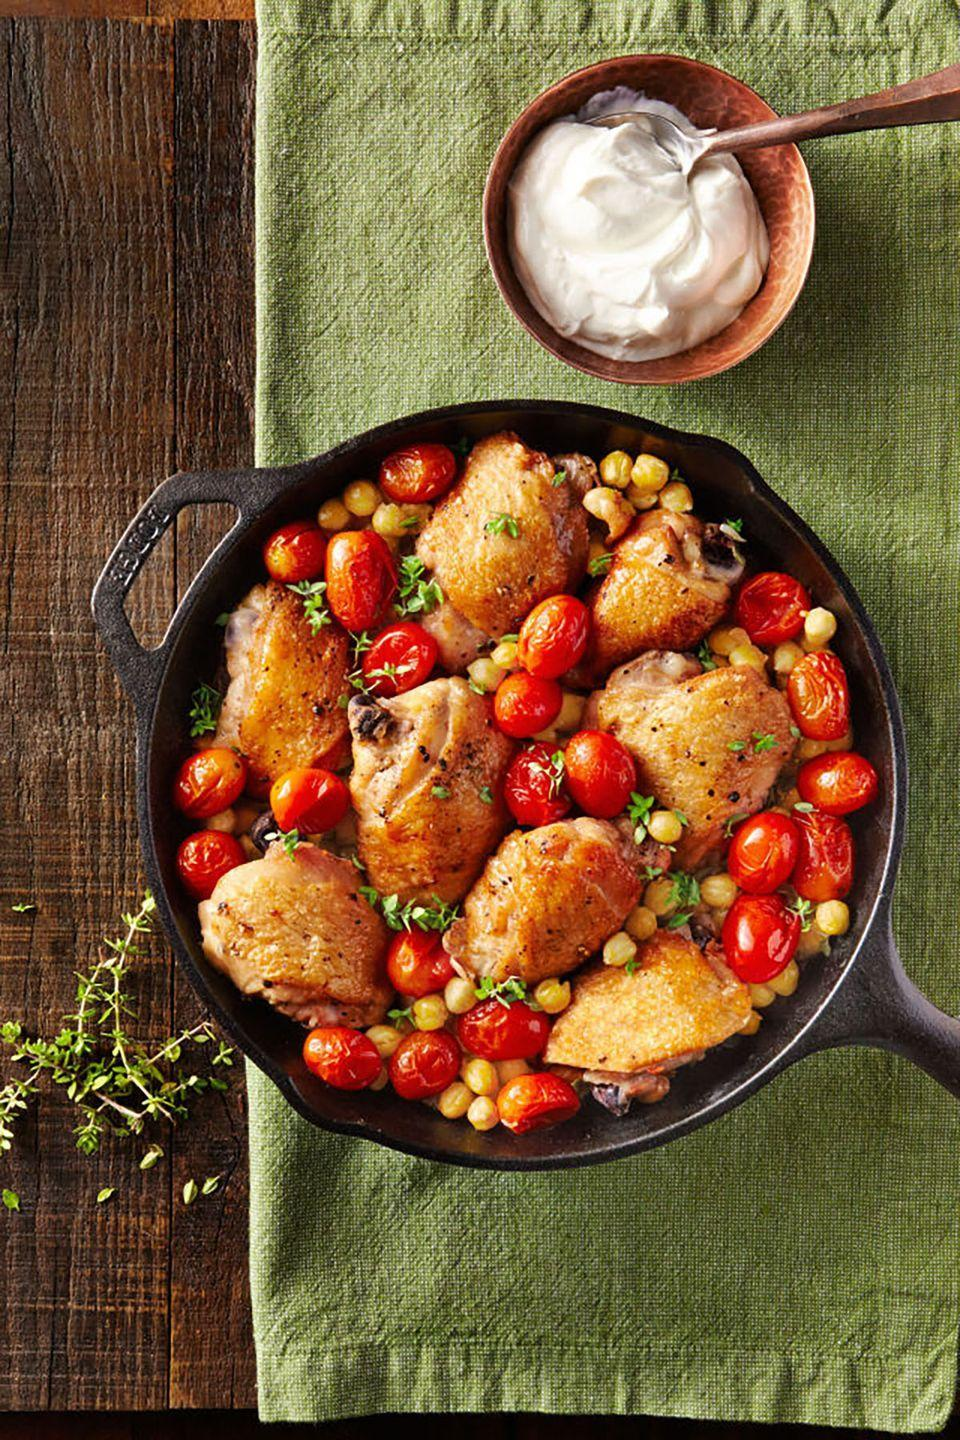 "<p>Simple but hearty, this entree is packed with nutrients and flavor.<br></p><p><strong><a href=""https://www.countryliving.com/food-drinks/recipes/a41025/crispy-chicken-thighs-with-smoky-chickpeas/"" rel=""nofollow noopener"" target=""_blank"" data-ylk=""slk:Get the recipe"" class=""link rapid-noclick-resp"">Get the recipe</a>.</strong></p>"